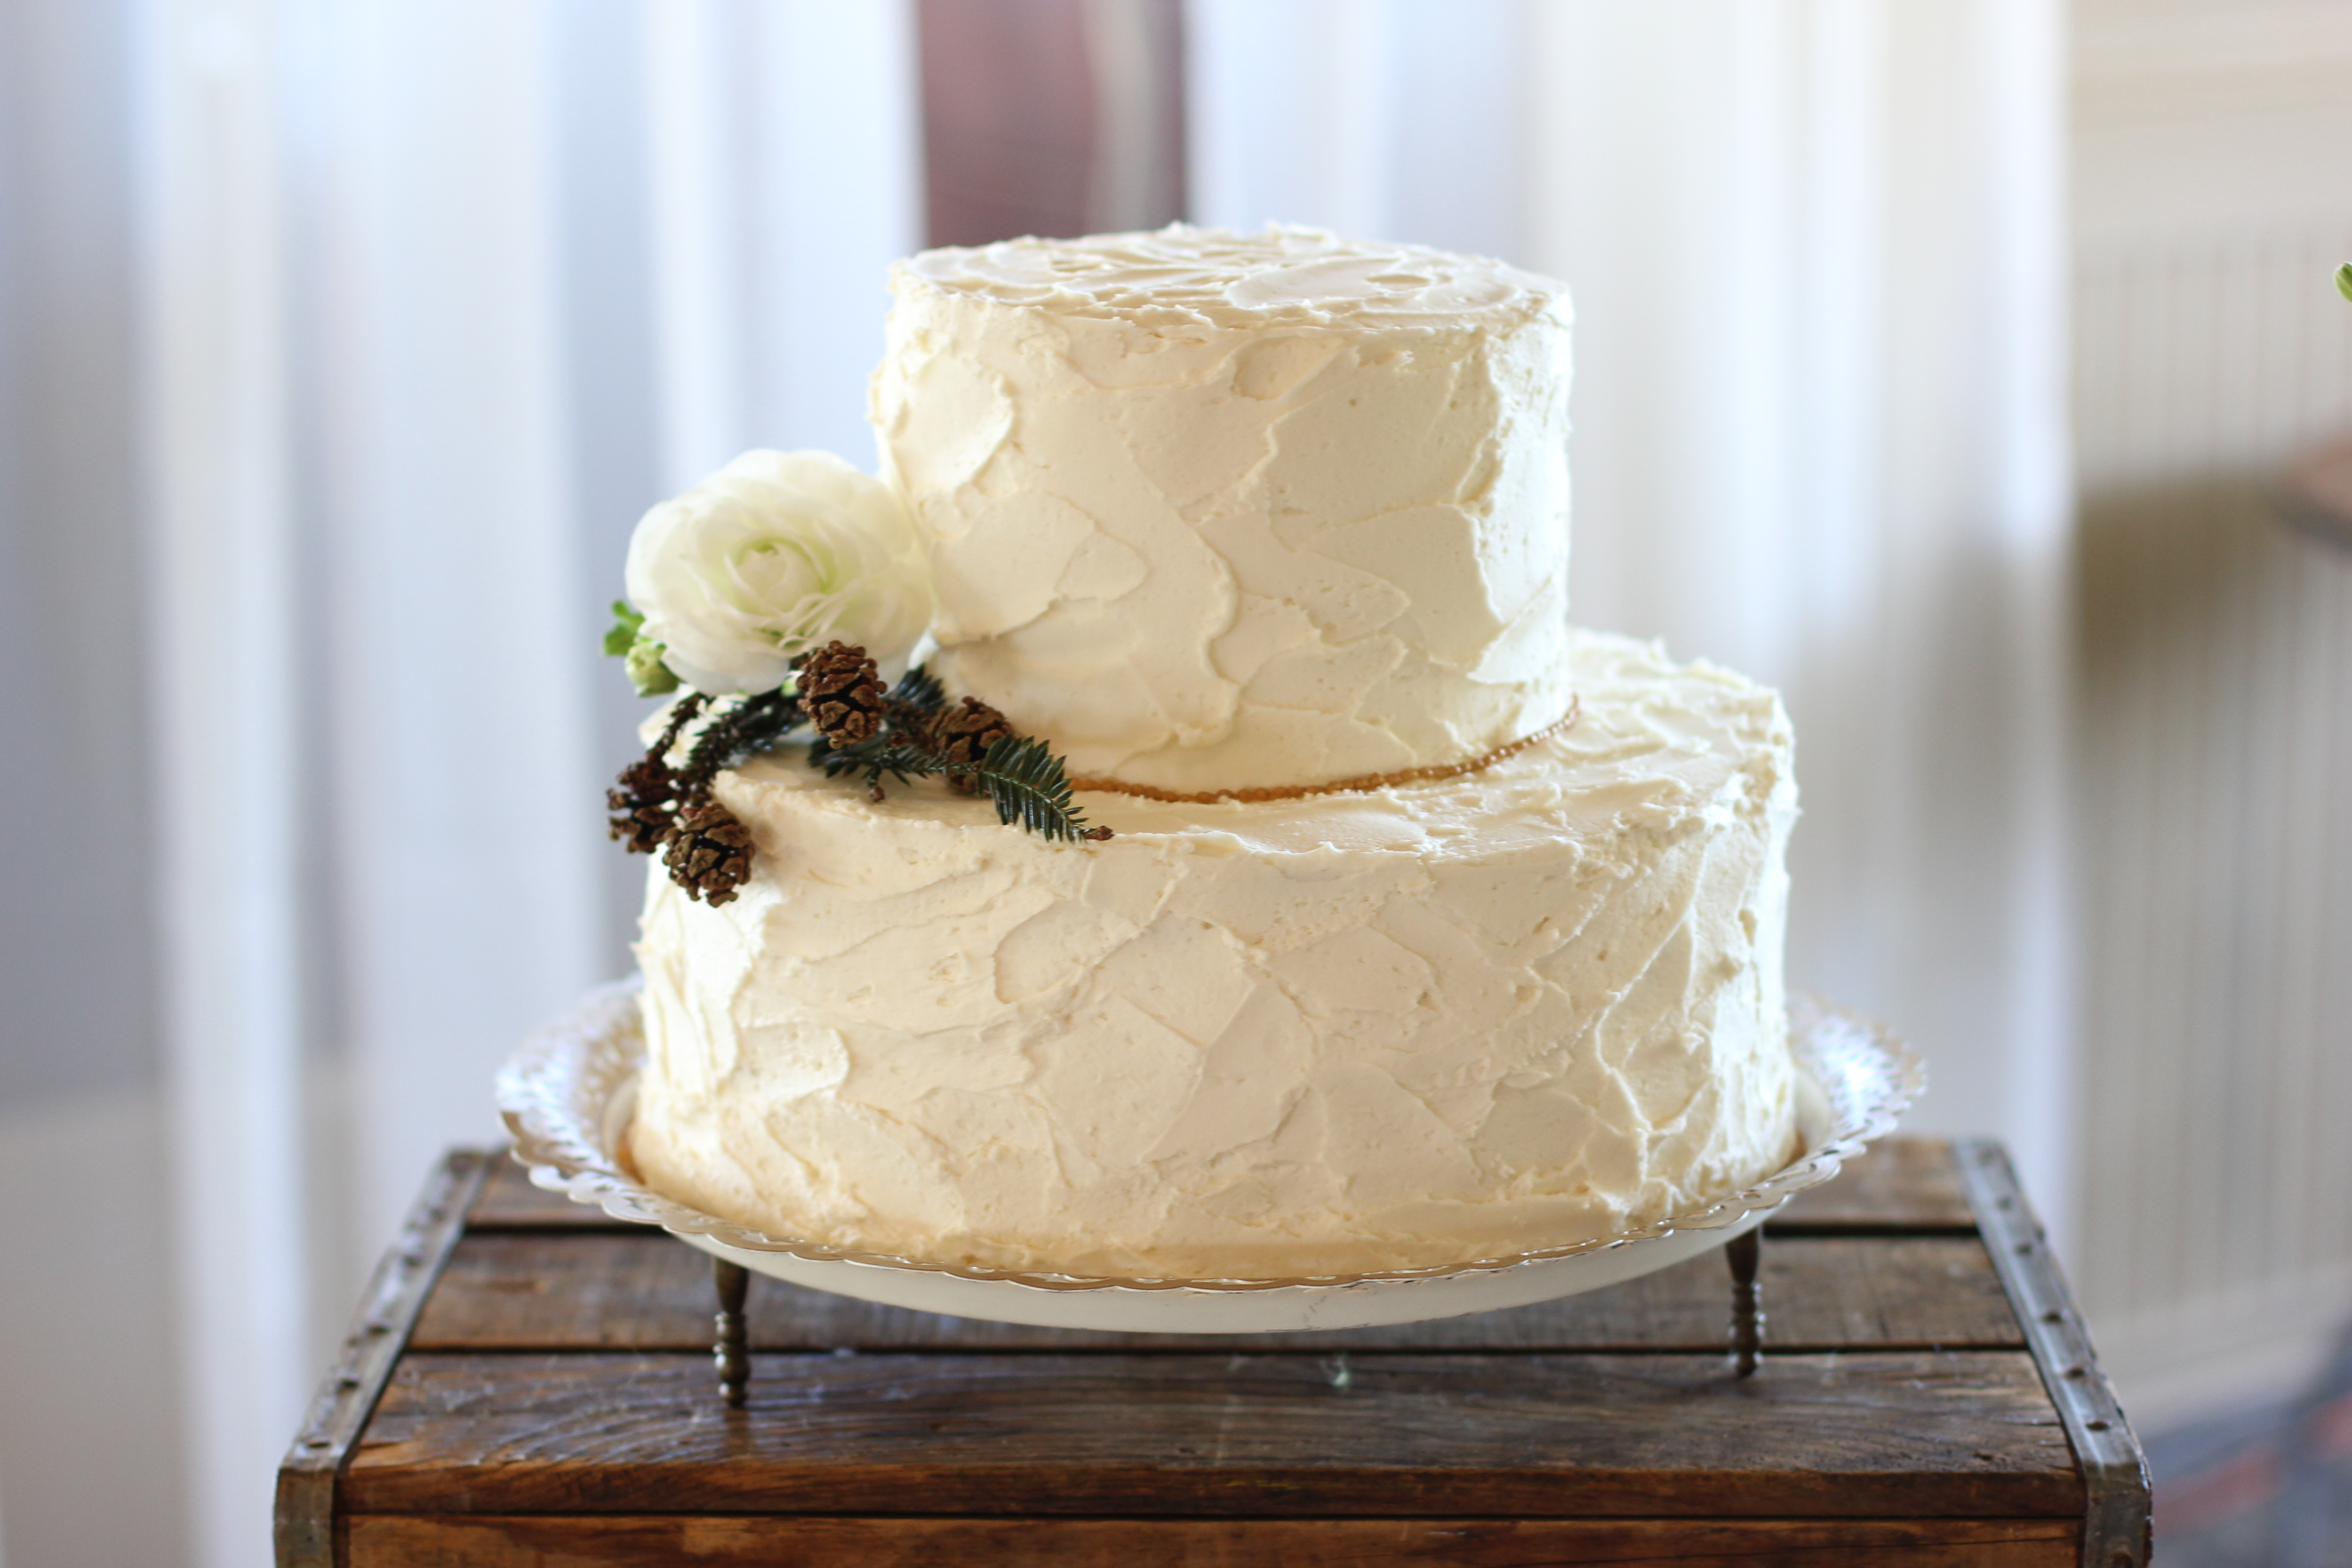 Winter wedding cakes - 4